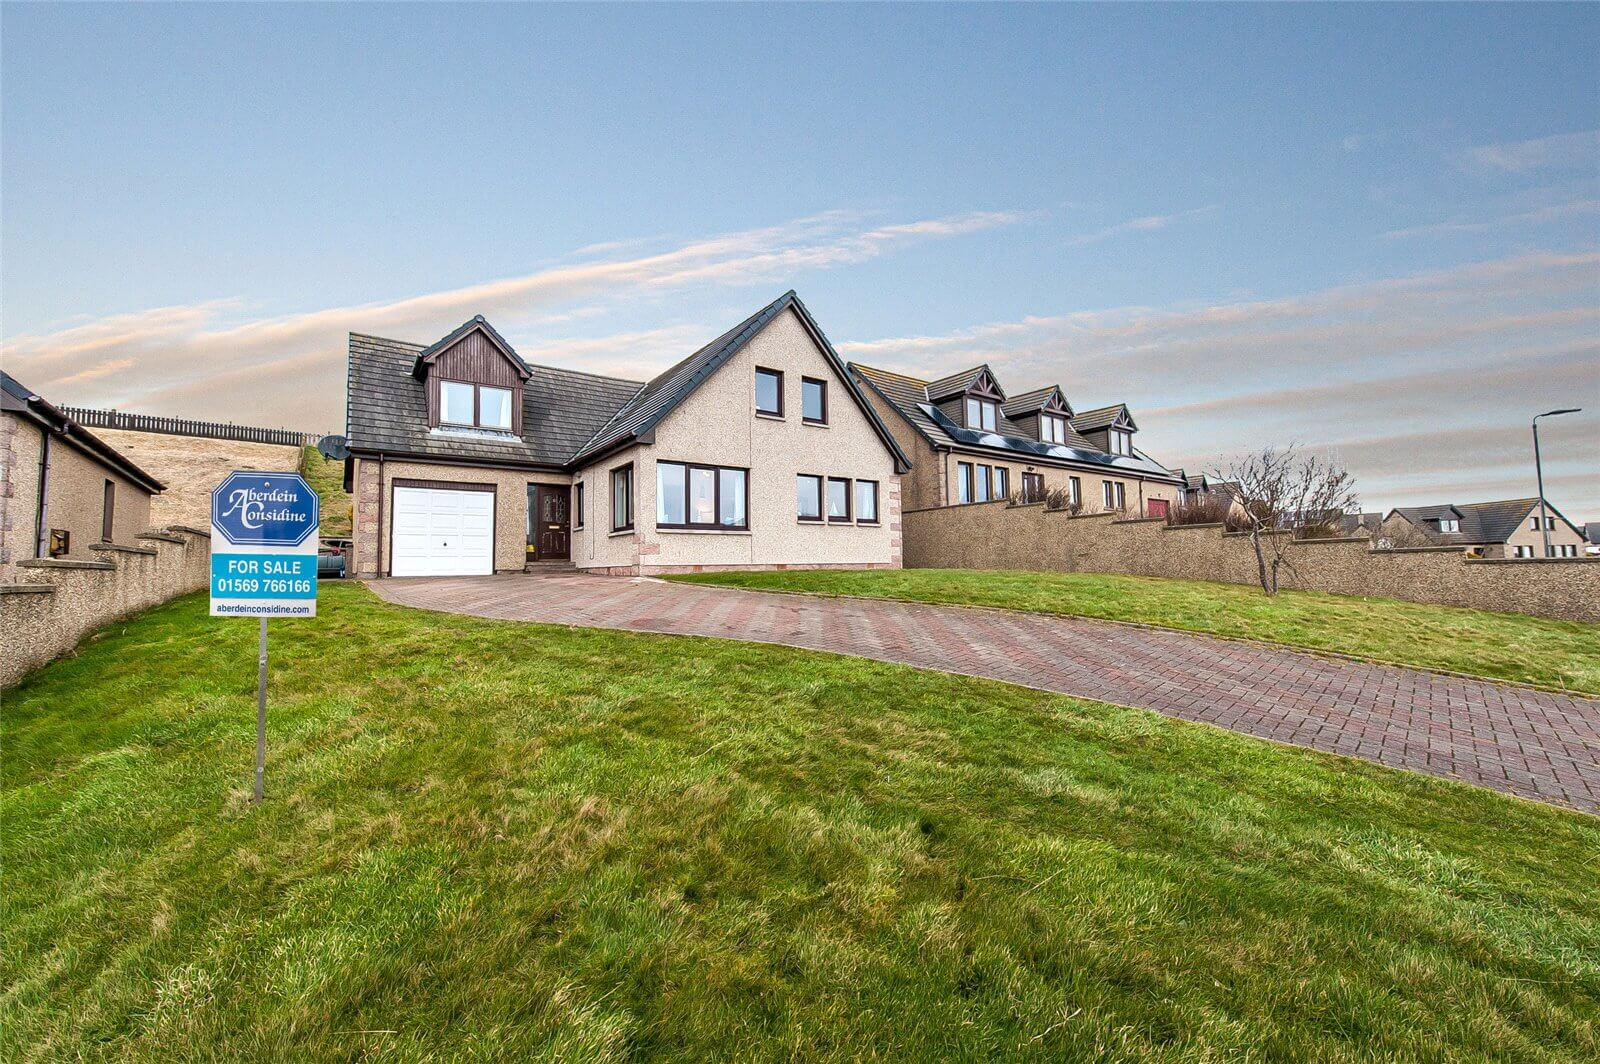 Our latest properties for sale and to let (25th February 2020)